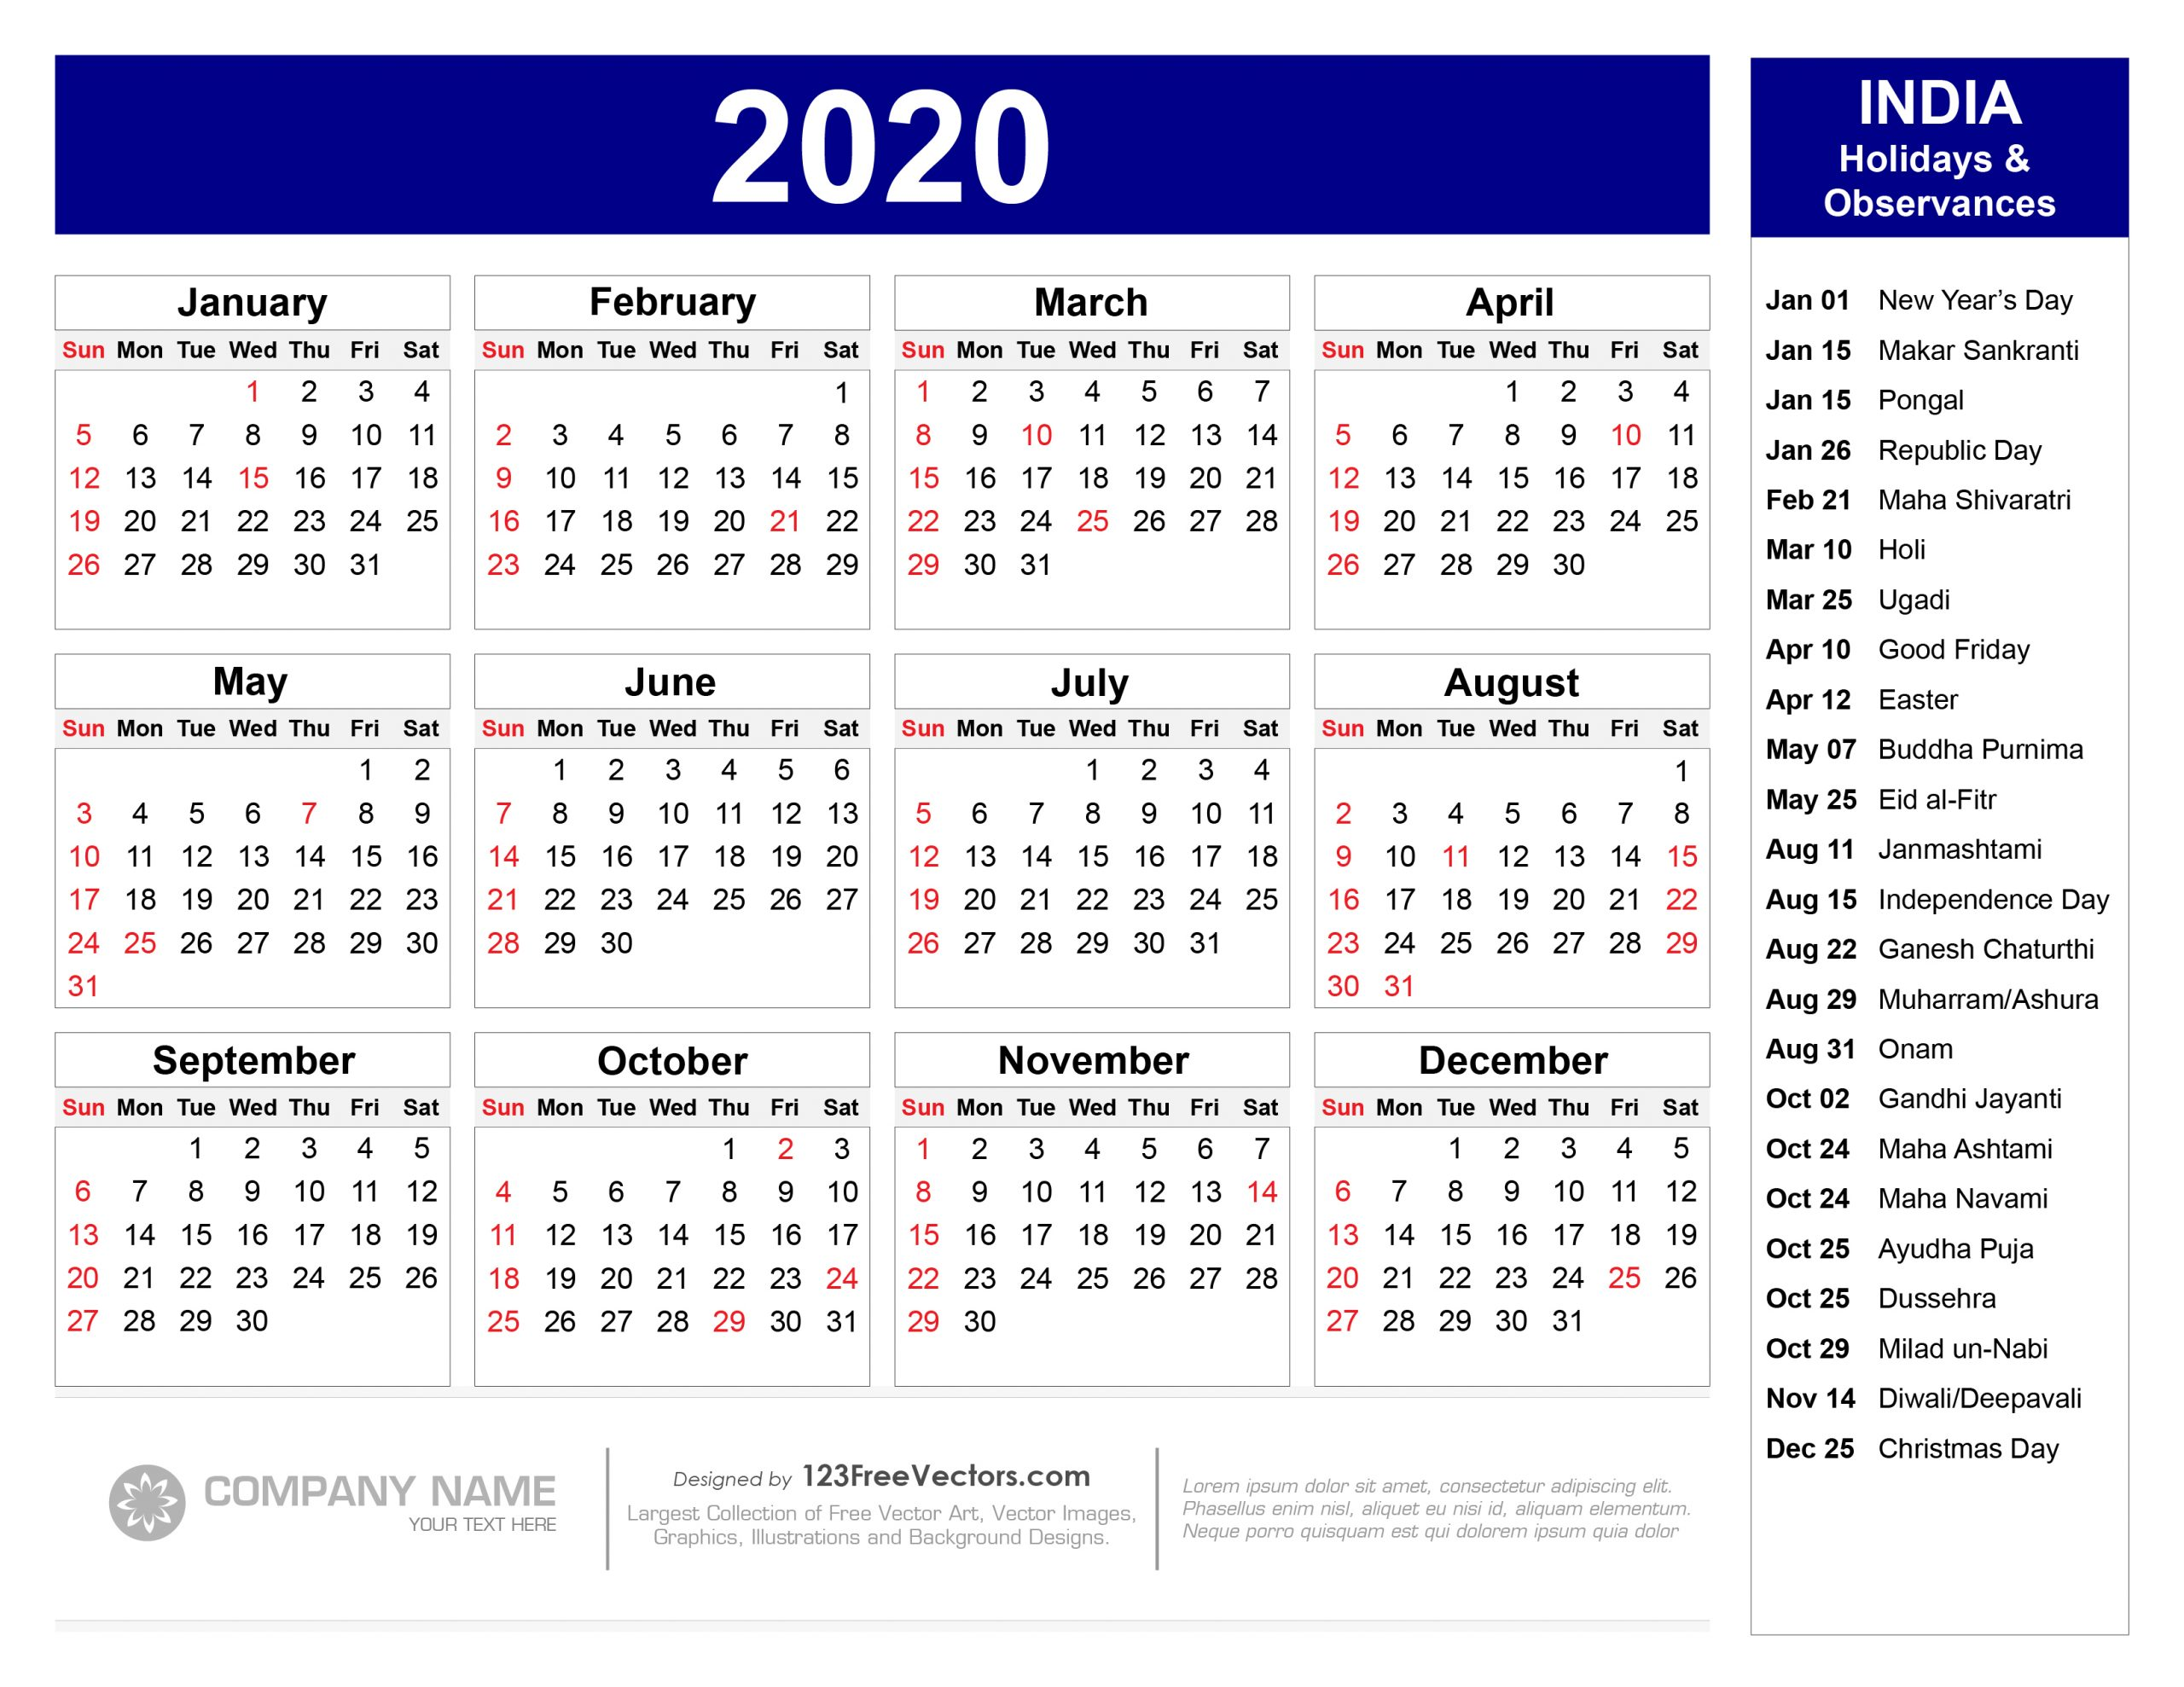 2020 Calendar With Indian Holidays Pdf